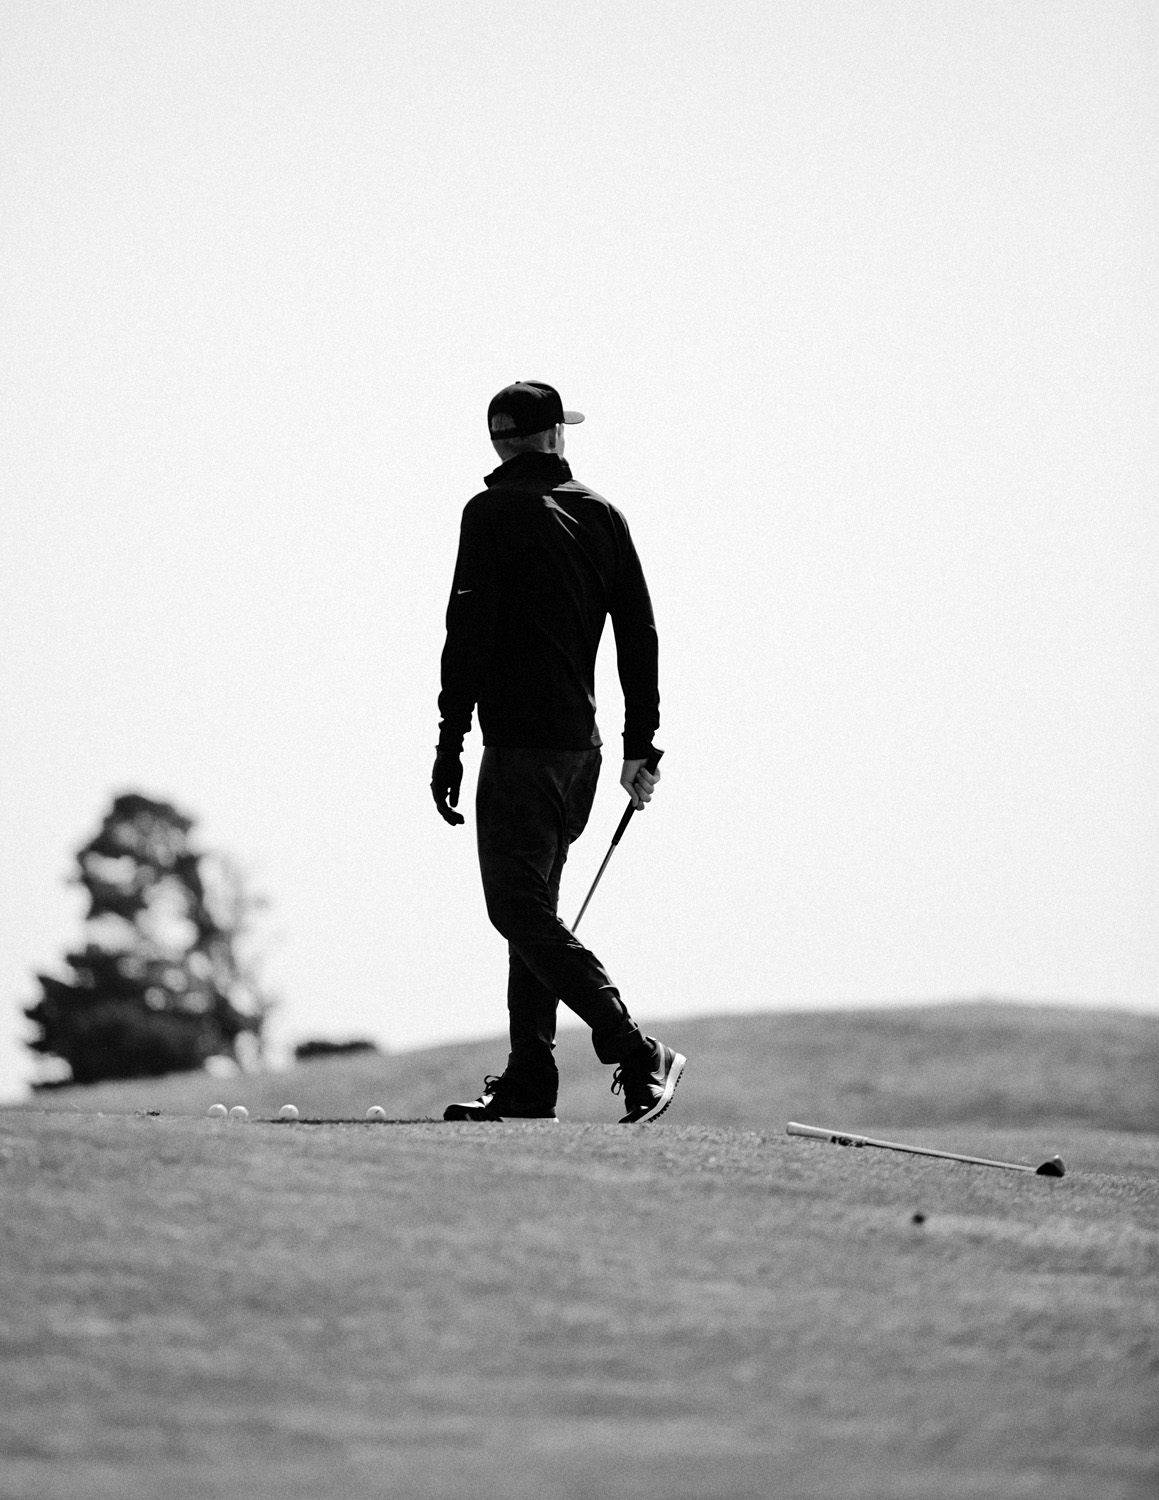 2014 Nike Golf Bandon Dunes Road Trip